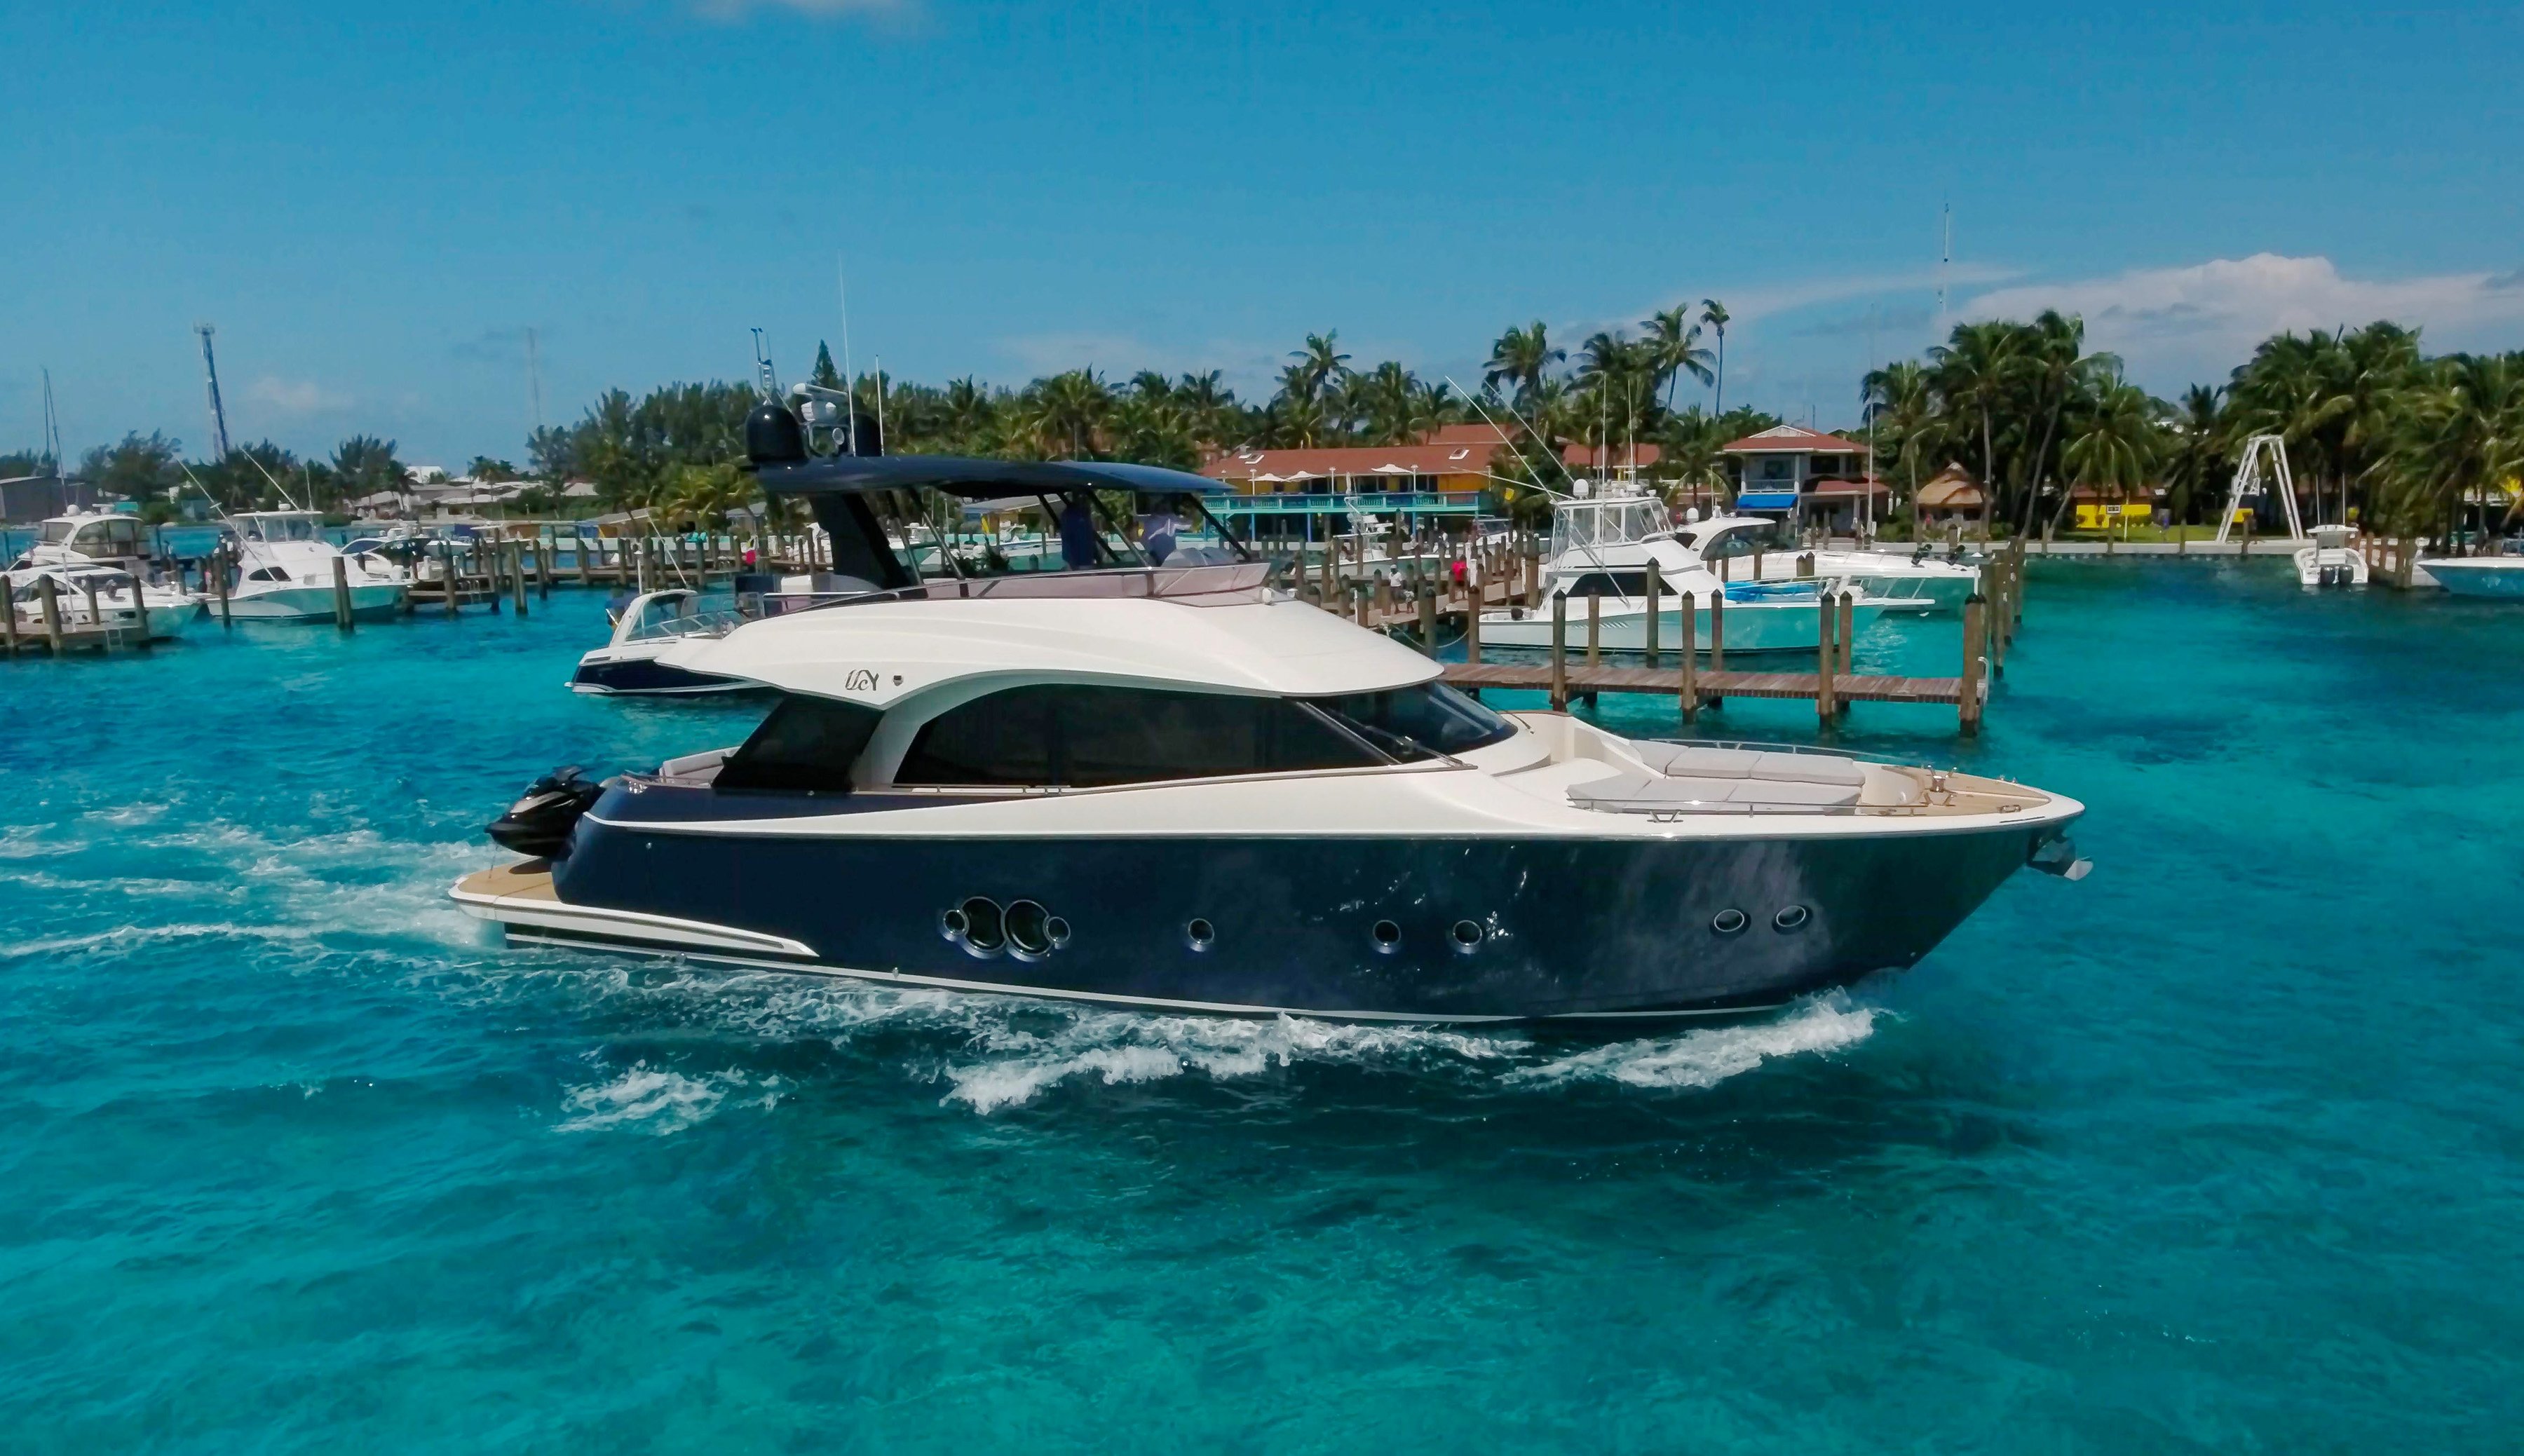 BANKSEA specs with detailed specification and builder summary